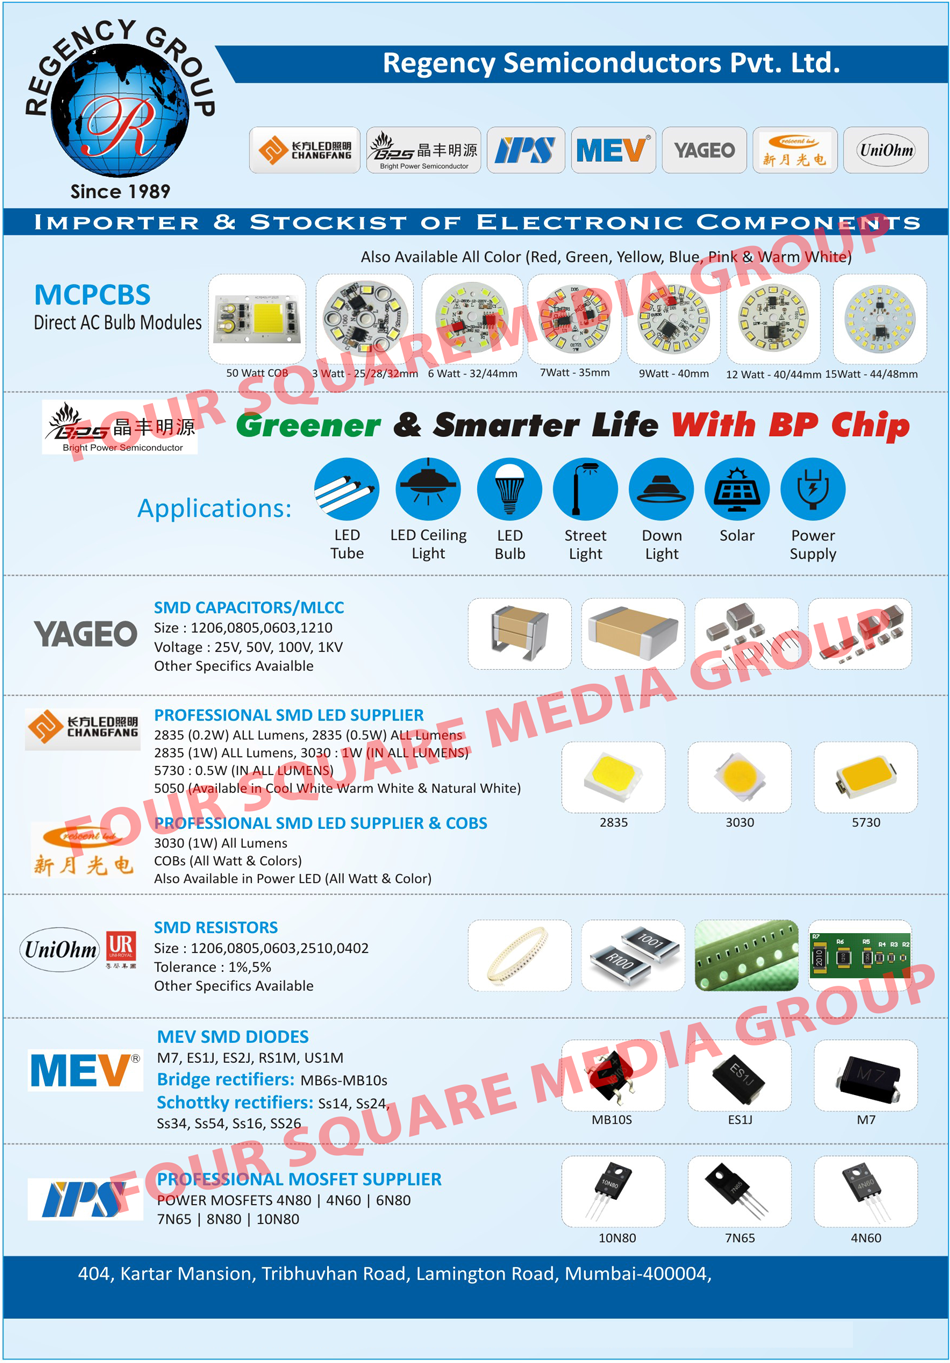 BP Chips, SMD Diodes, Bridge Rectifiers, Schottky Rectifiers, Bulb Modules, SMD Leds, Mosfets, Electronic Components, Semiconductor, MCPCB, AC Bulb Modules, BP Chips, Power Mosfets, Electronic Components, SMD Capacitors, COB, SMD Resistors, MEV SMD Diodes